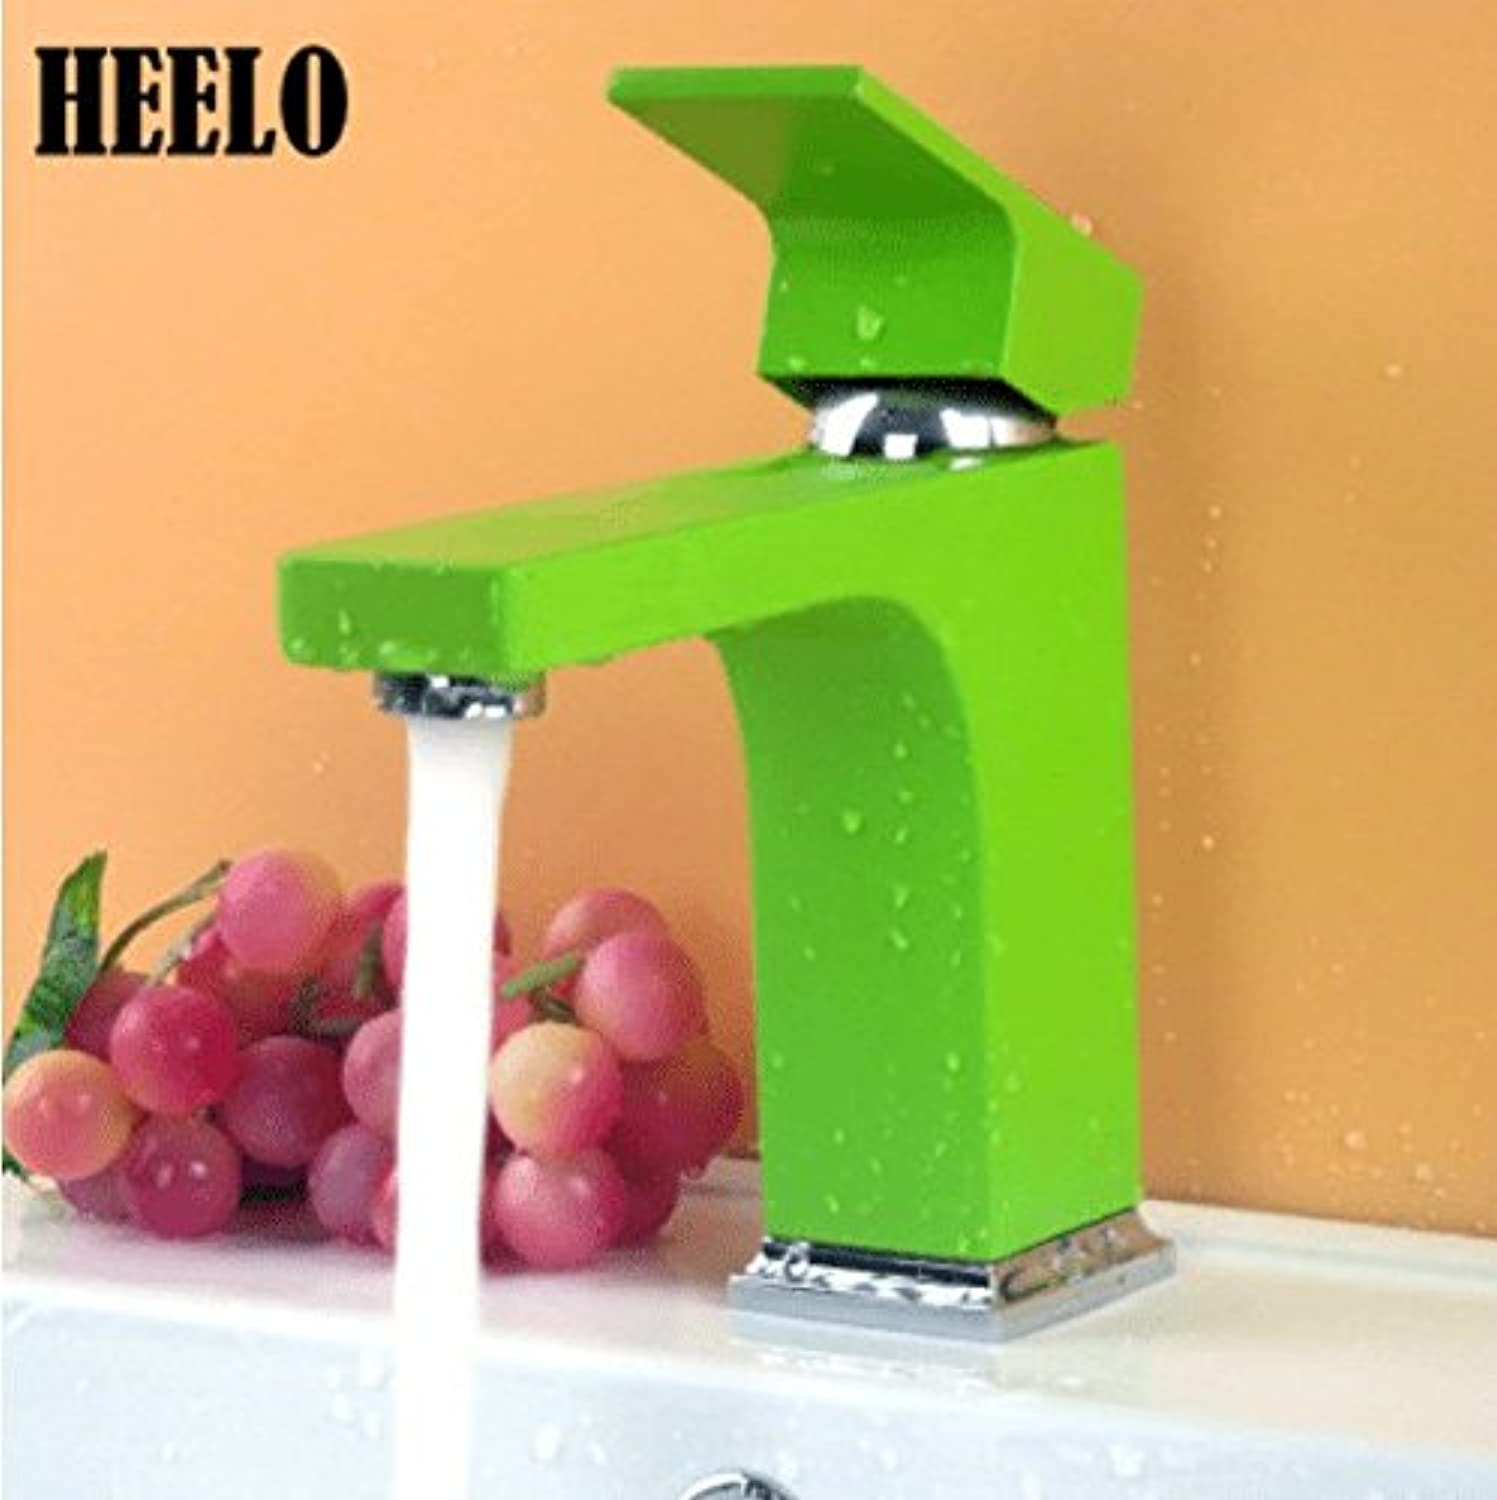 Lalaky Taps Faucet Kitchen Mixer Sink Waterfall Bathroom Mixer Basin Mixer Tap for Kitchen Bathroom and Washroom Square Copper Hot Green Green Black White